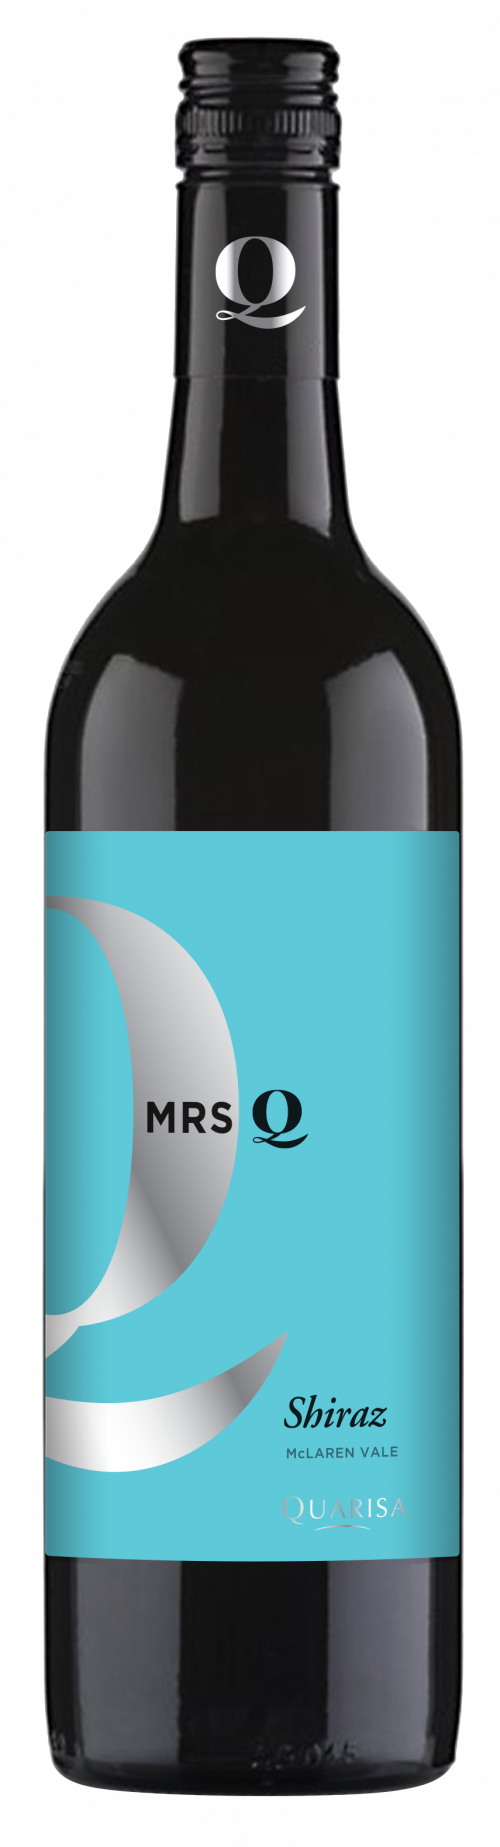 Mrs Q Shiraz Mclaren Vale 750ml